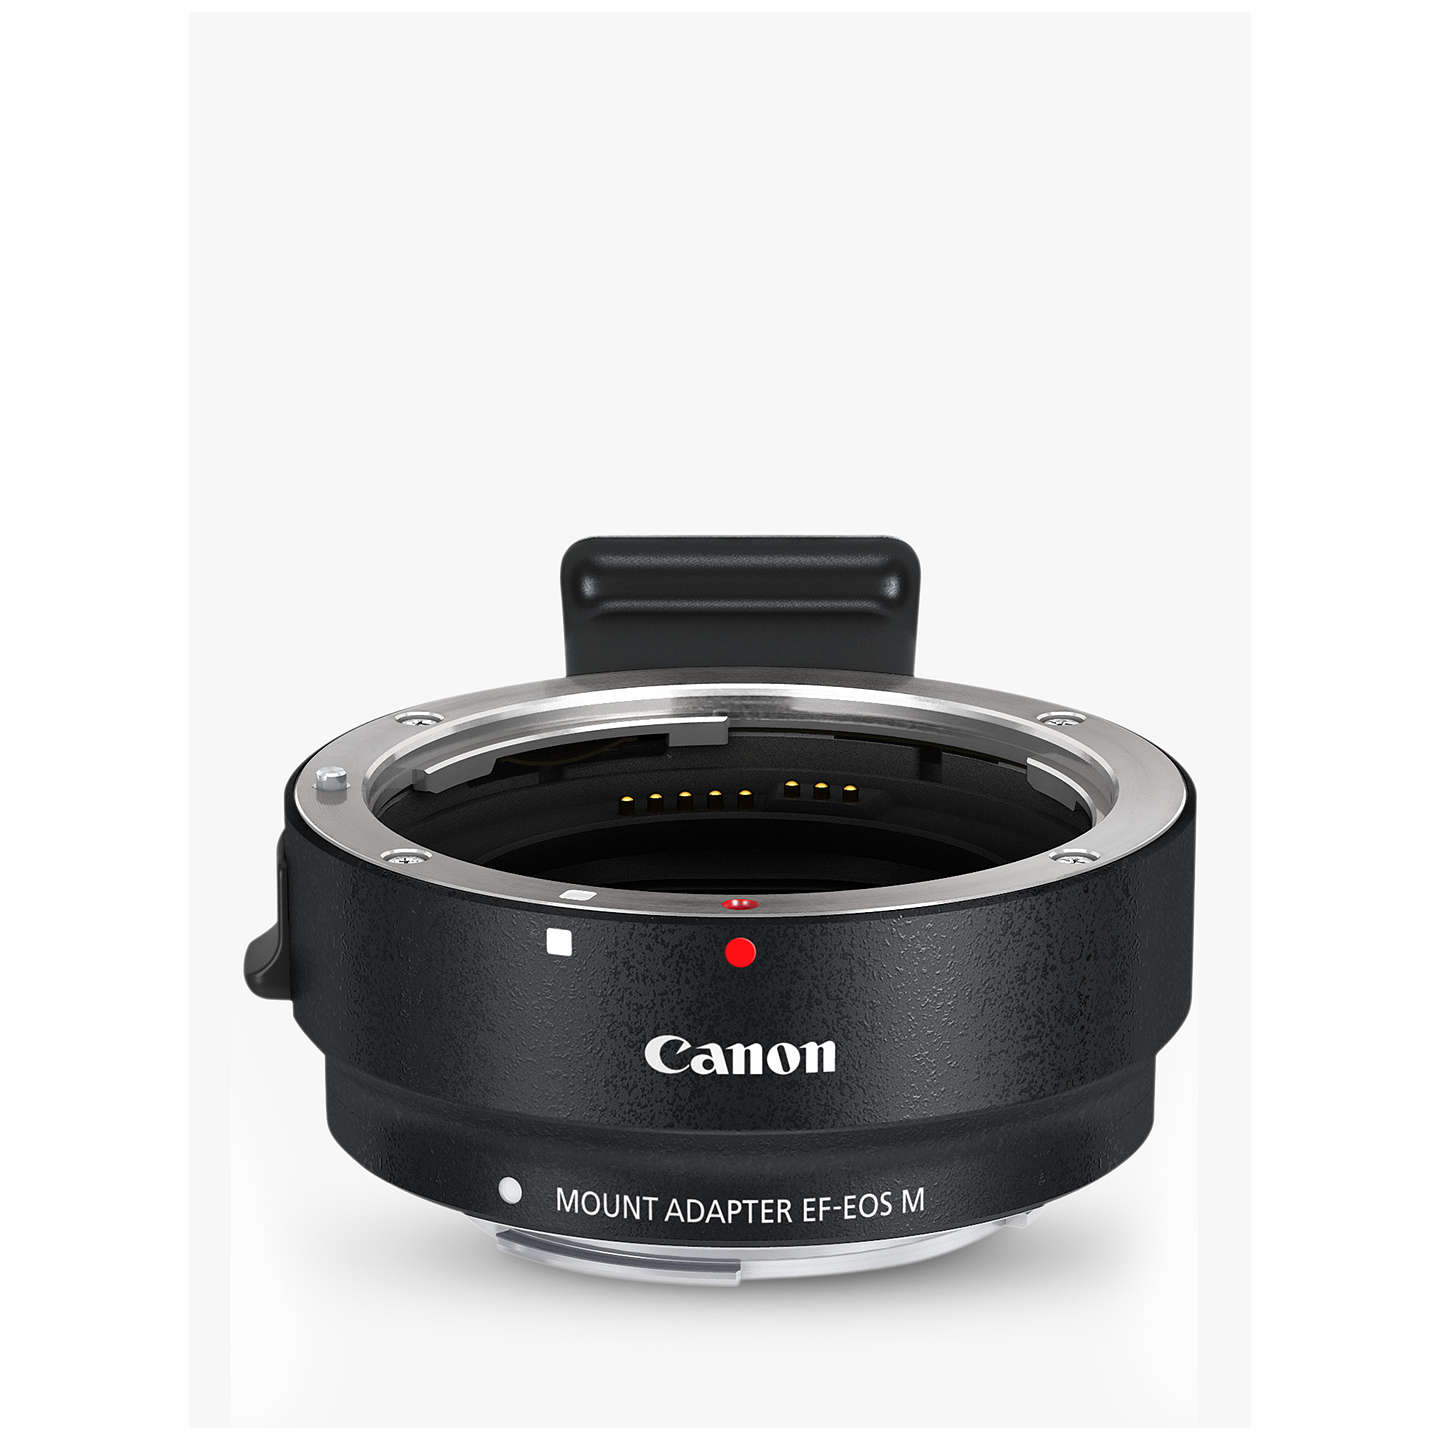 BuyCanon Mount Adapter EF-EOS M Online at johnlewis.com